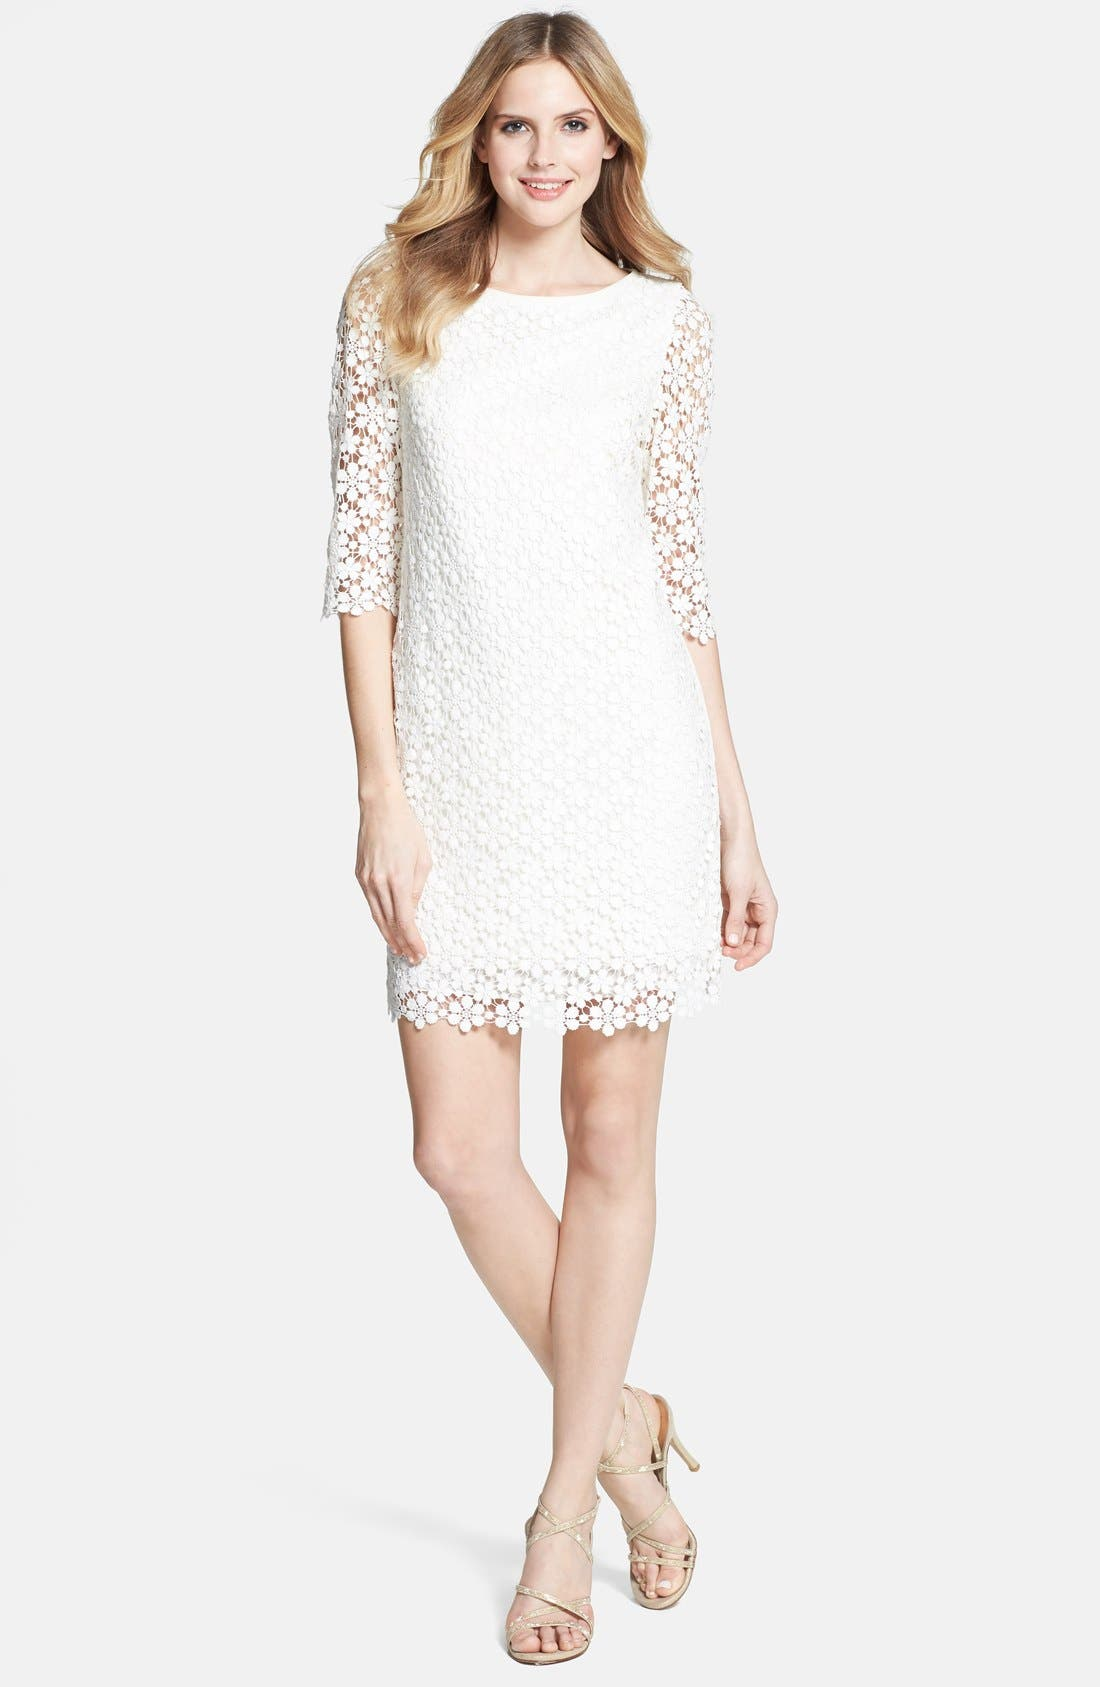 'Tibi' Daisy Guipure Lace Shift Dress,                             Alternate thumbnail 3, color,                             Ivory